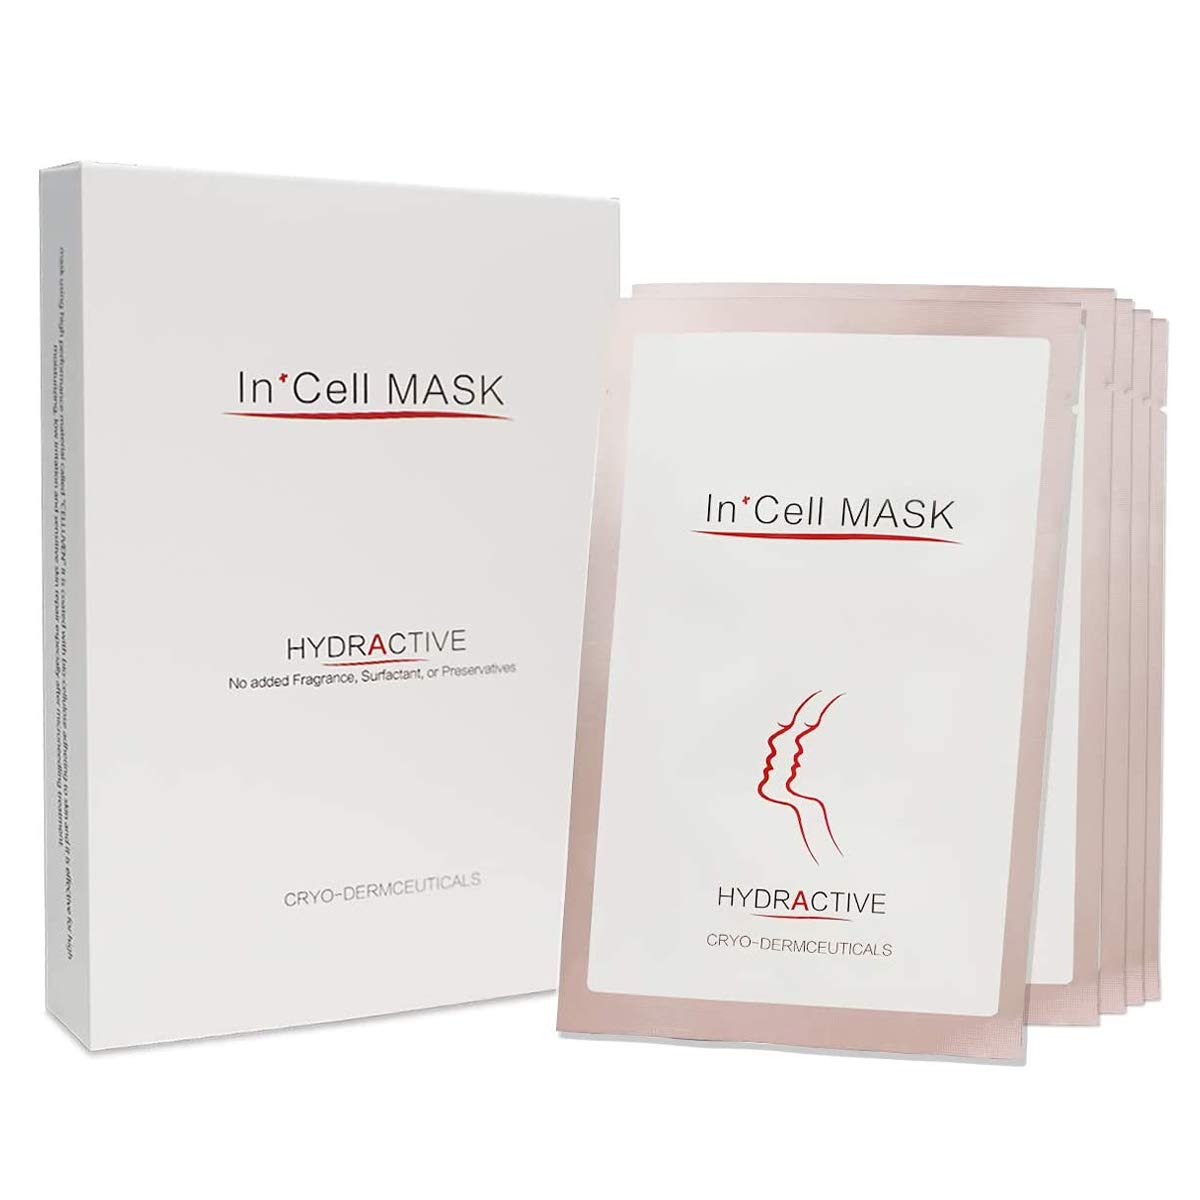 Derma Roller Face Microneedling Repair Cool Sheet Mask Acne Healing Patch - Instant Hydration, Soothing, Cooling, Post-Treatment, Post Microneedling, Reduce Redness and Stinging Feeling